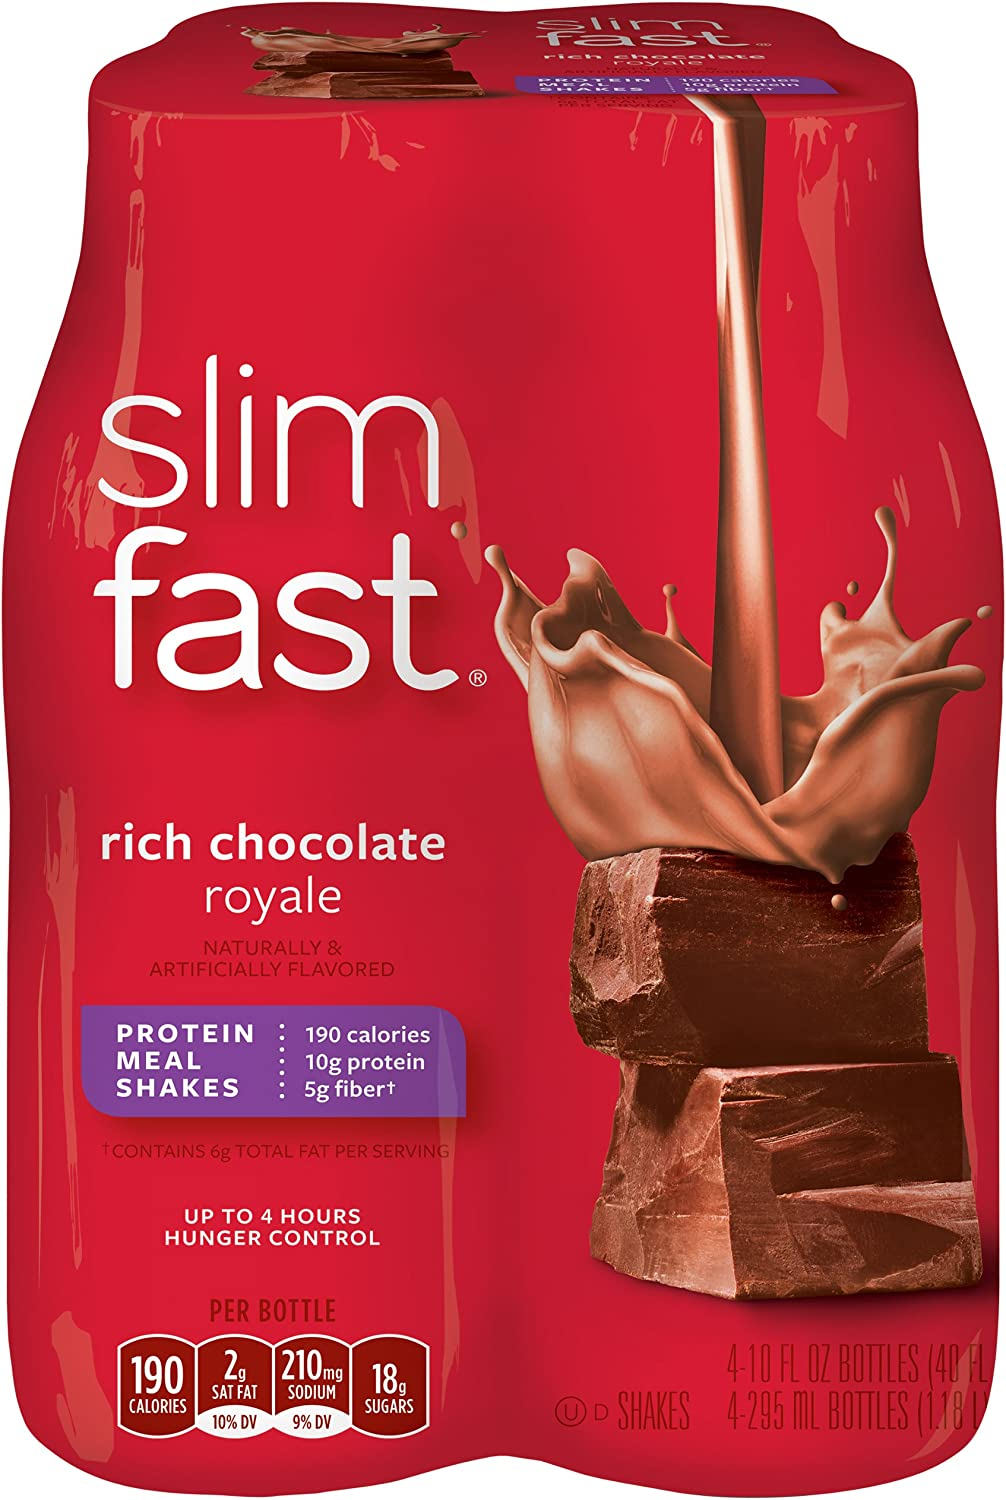 Slim Fast 3-2-1 Rich Chocolate Royale Case Limited time trial price OZ 10 Bargain sale Contains Shake